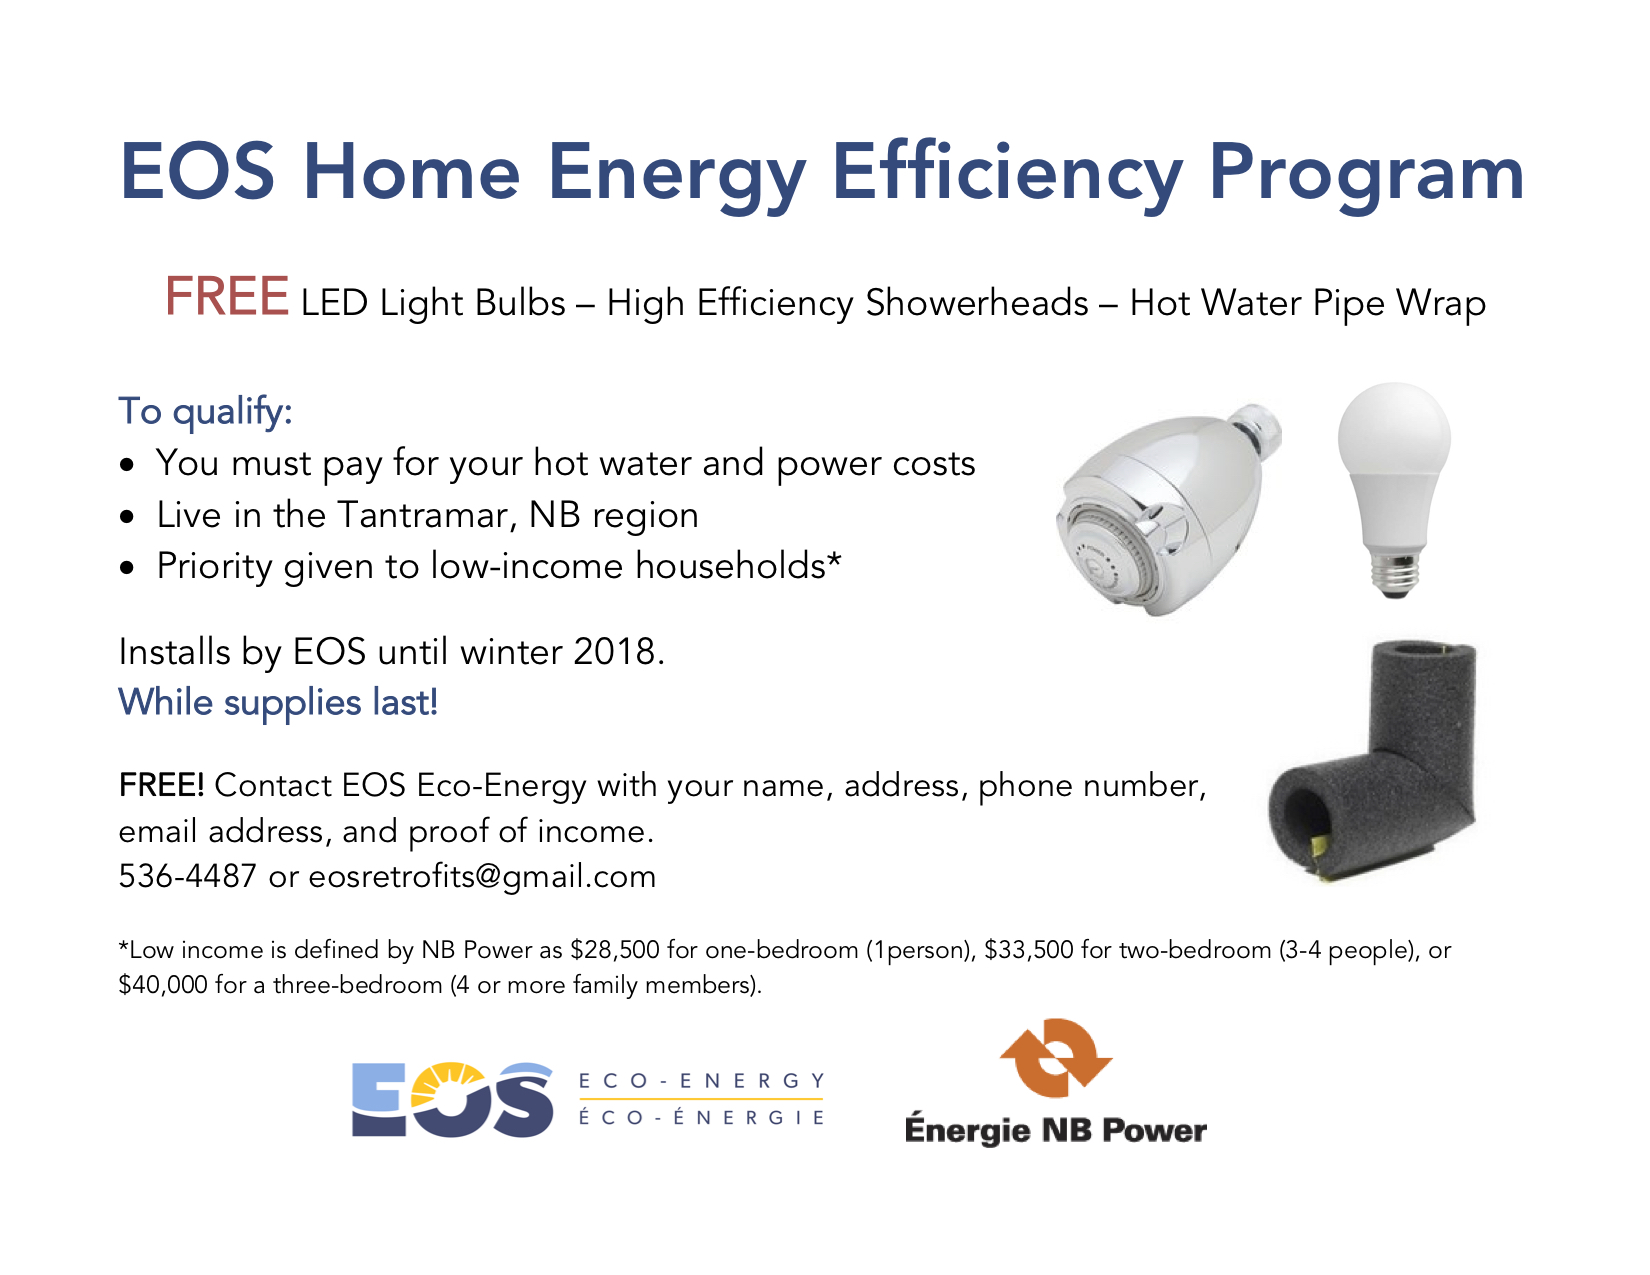 Get FREE stuff from EOS while supplies last (priority for lower